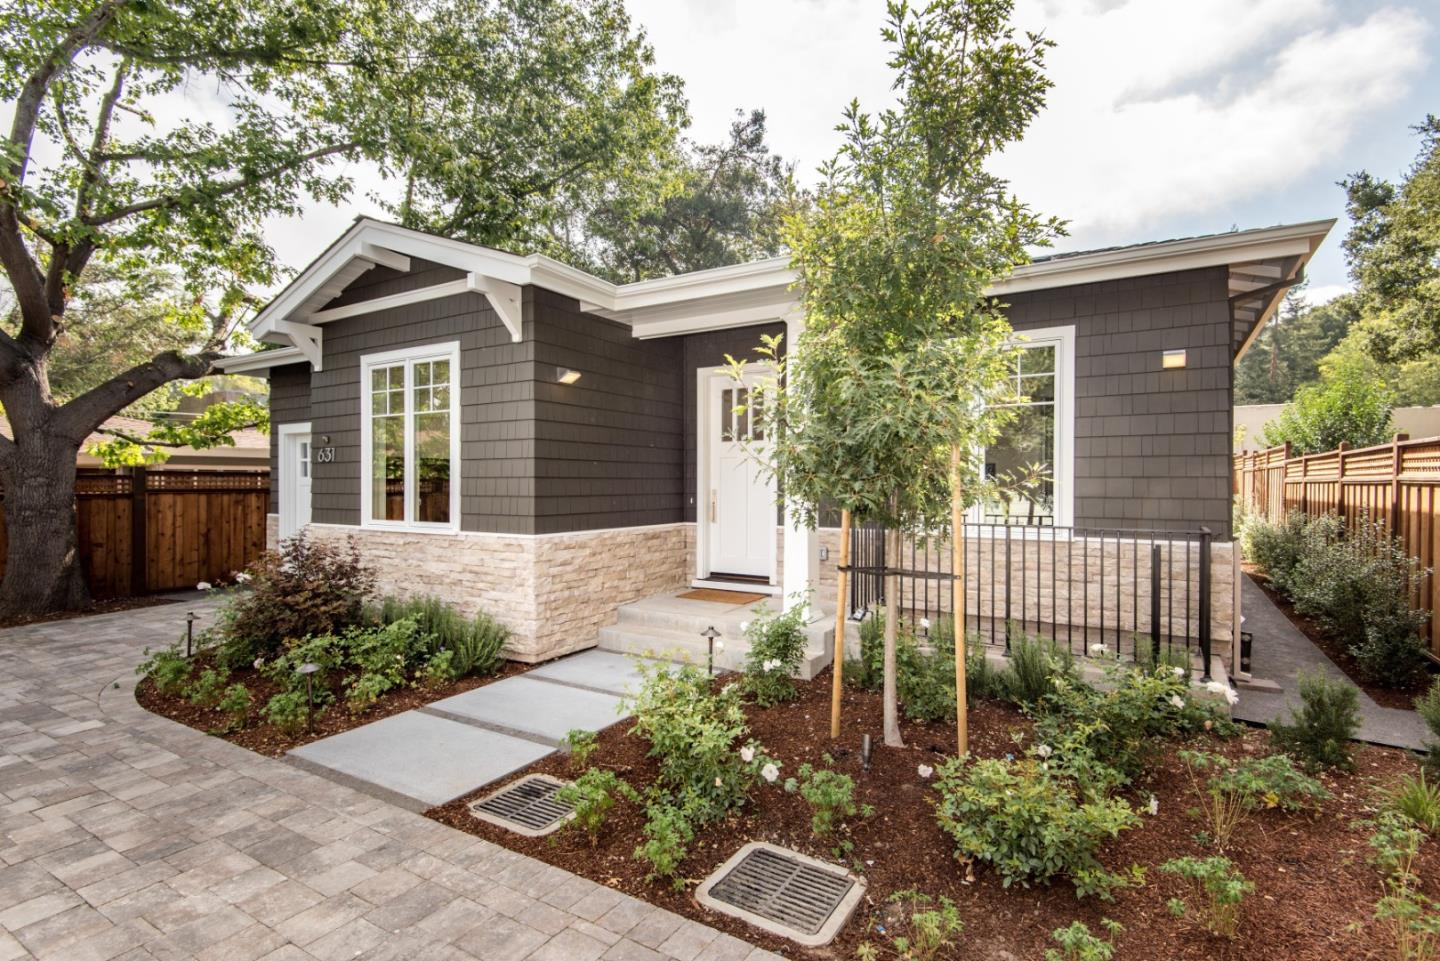 631 Harvard Avenue Menlo Park, CA 94025 - MLS #: ML81730576